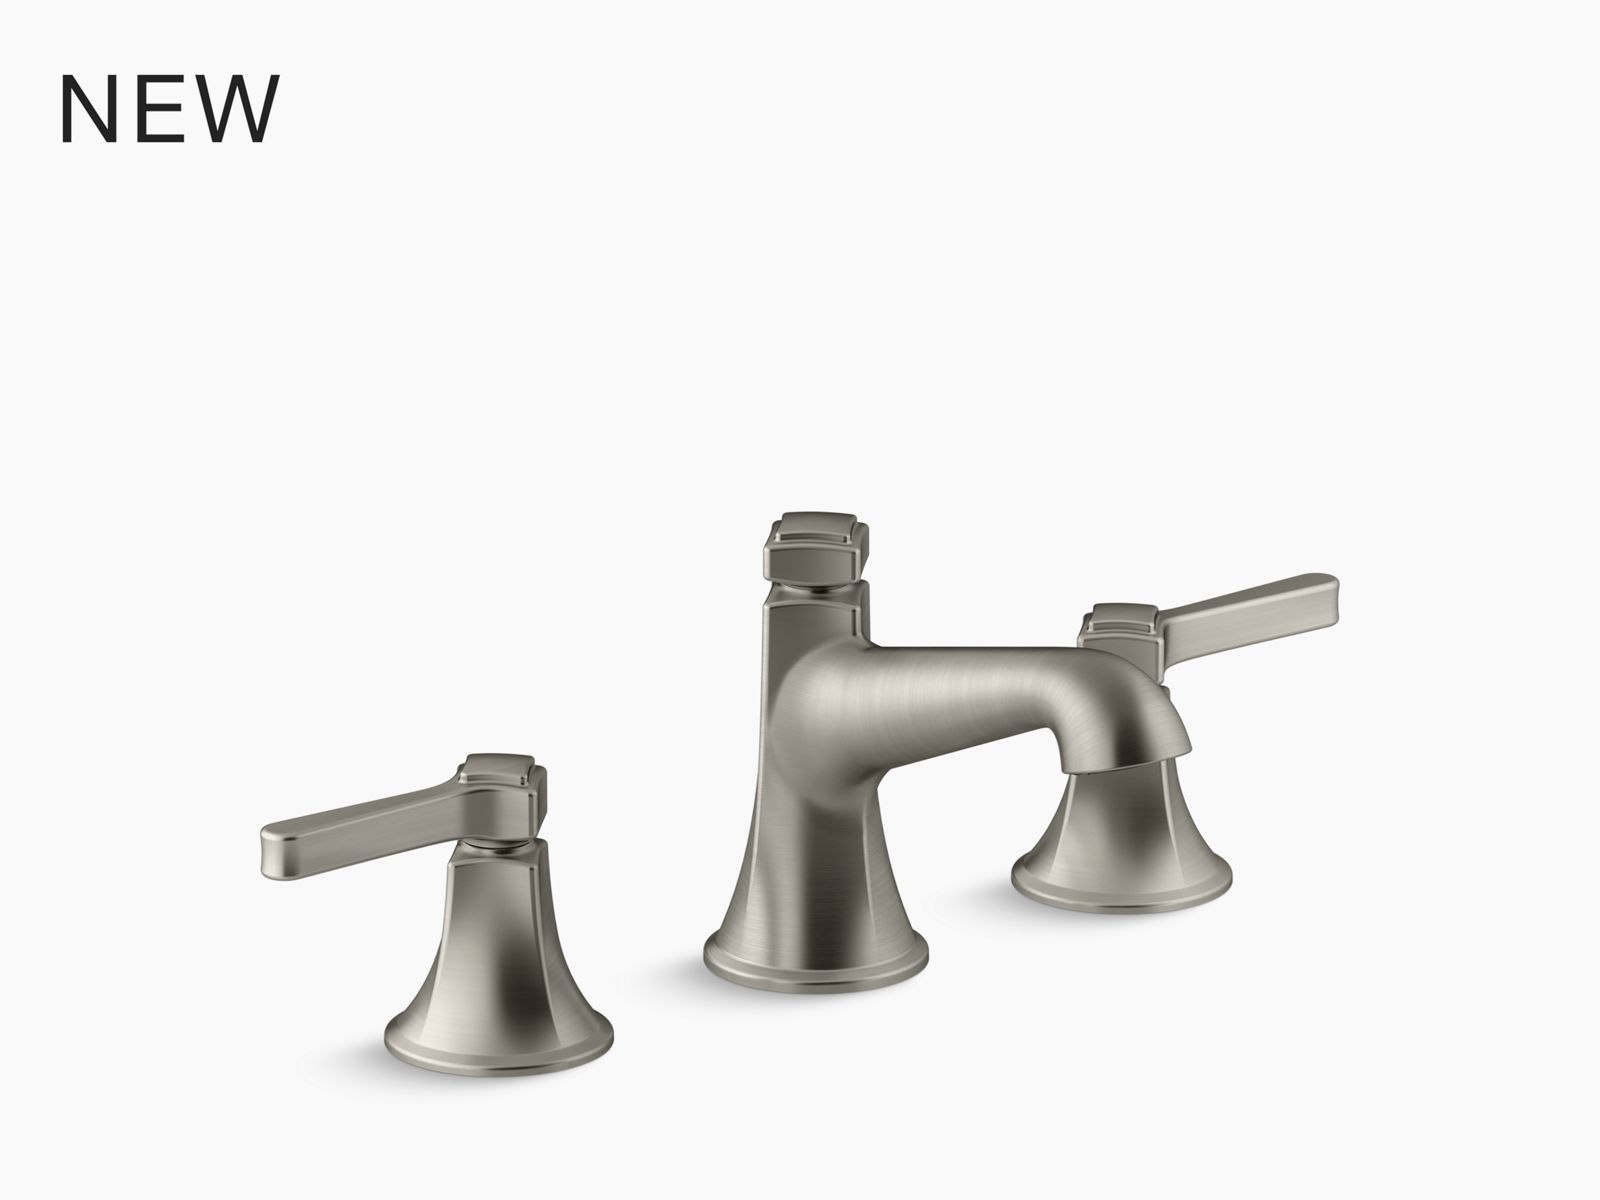 rubicon rite temp bath and shower faucet set with valve